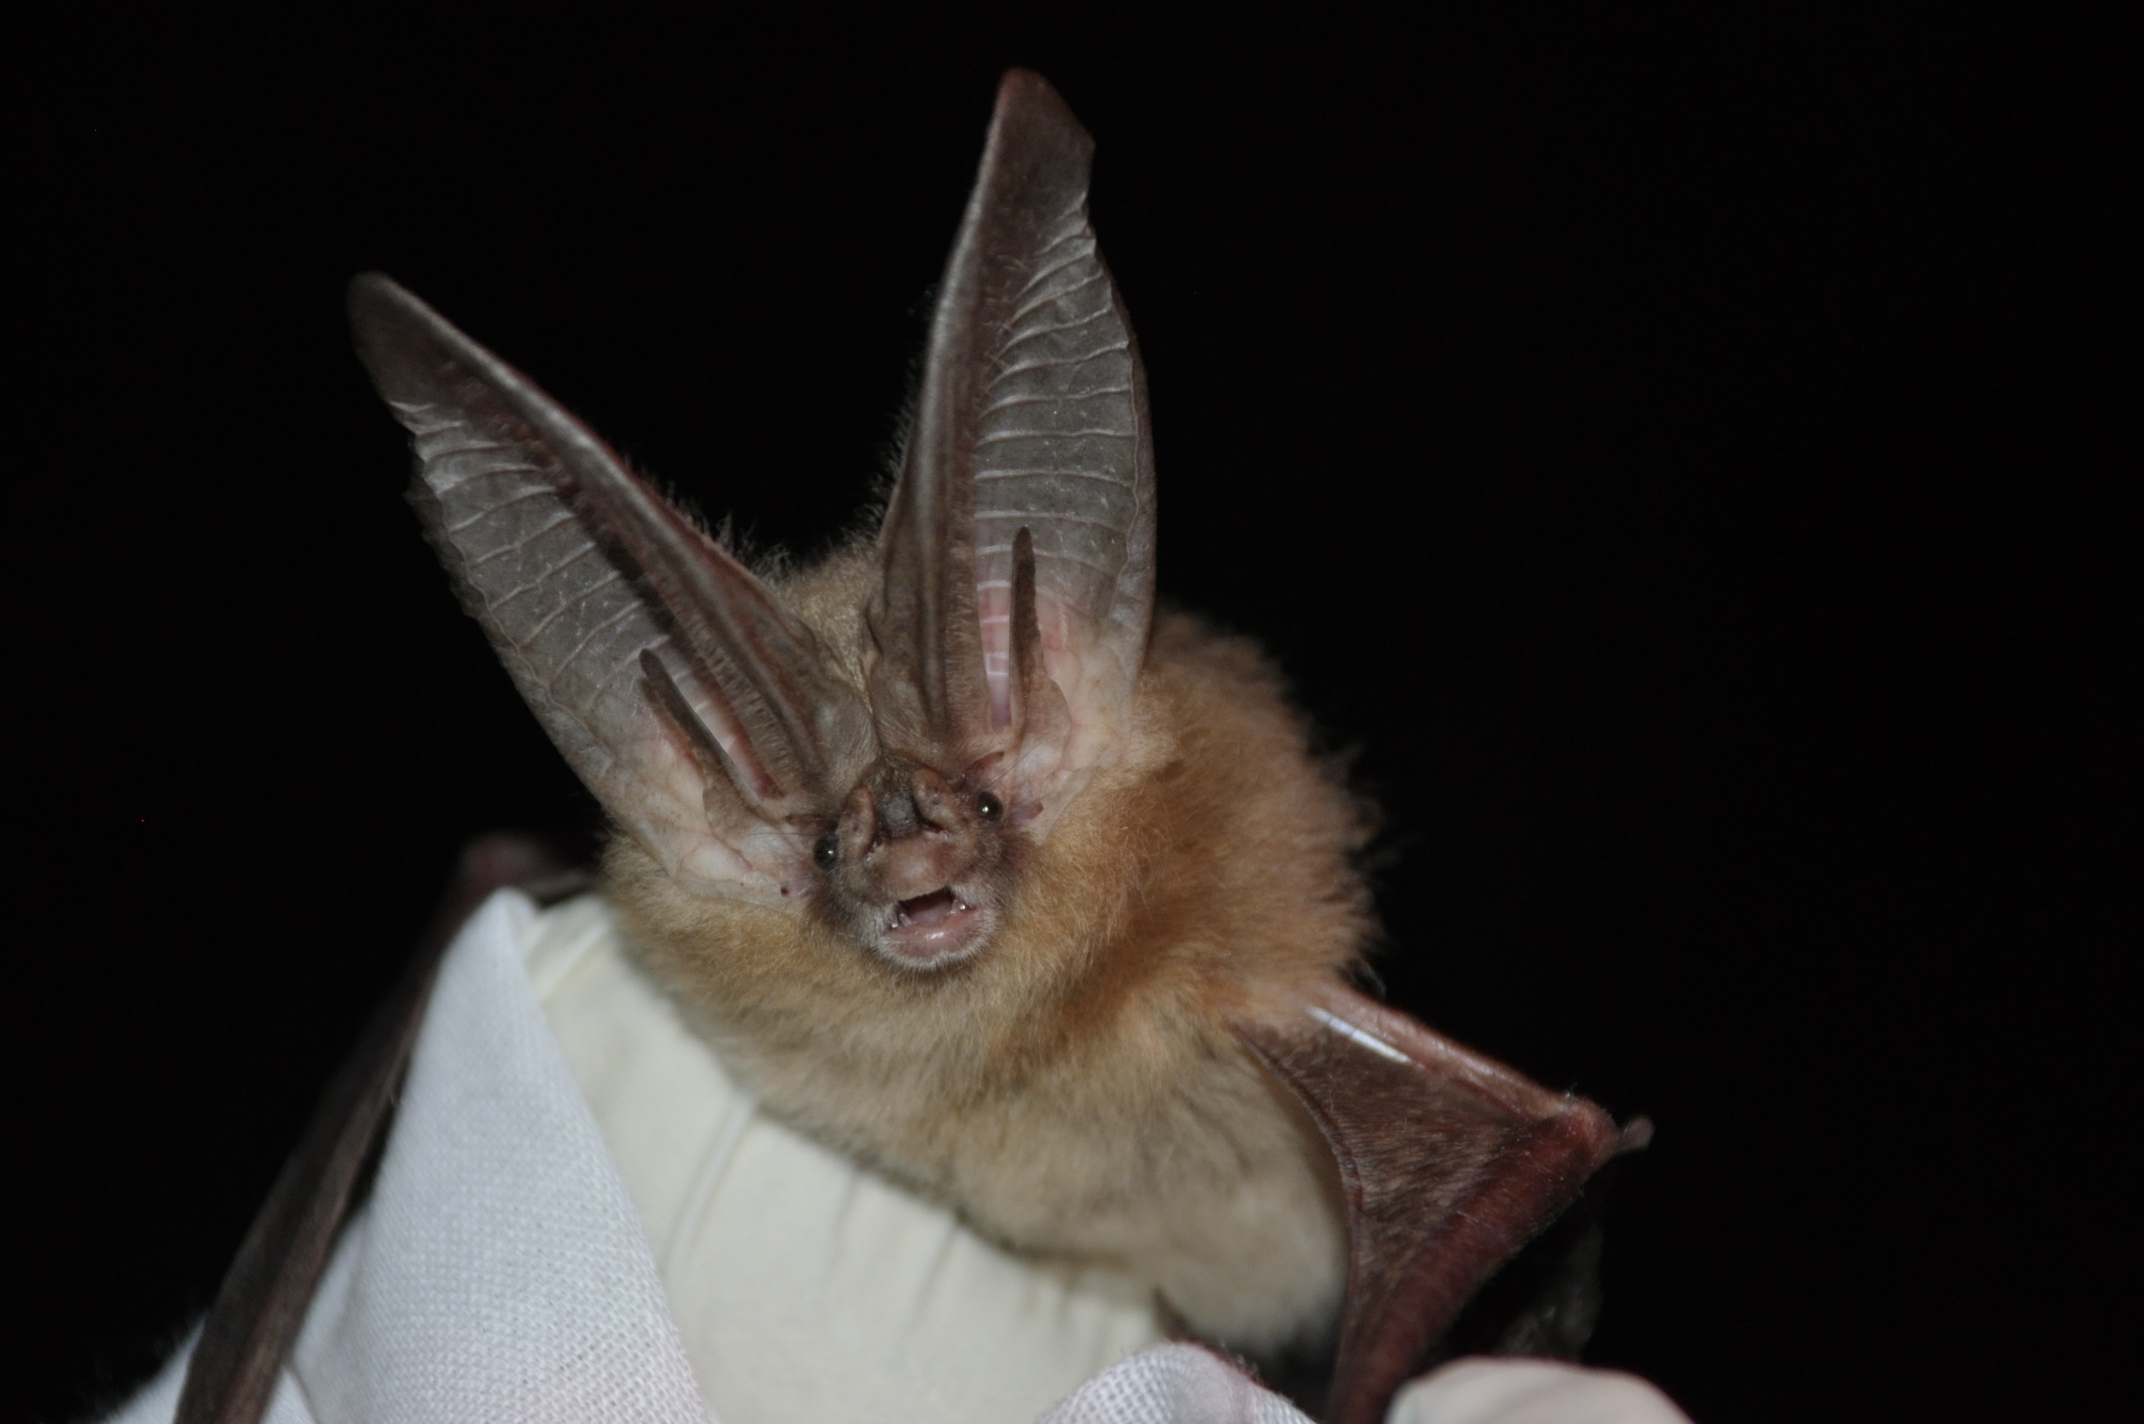 Townsend's big-eared bat - Corynorhinus townsendii